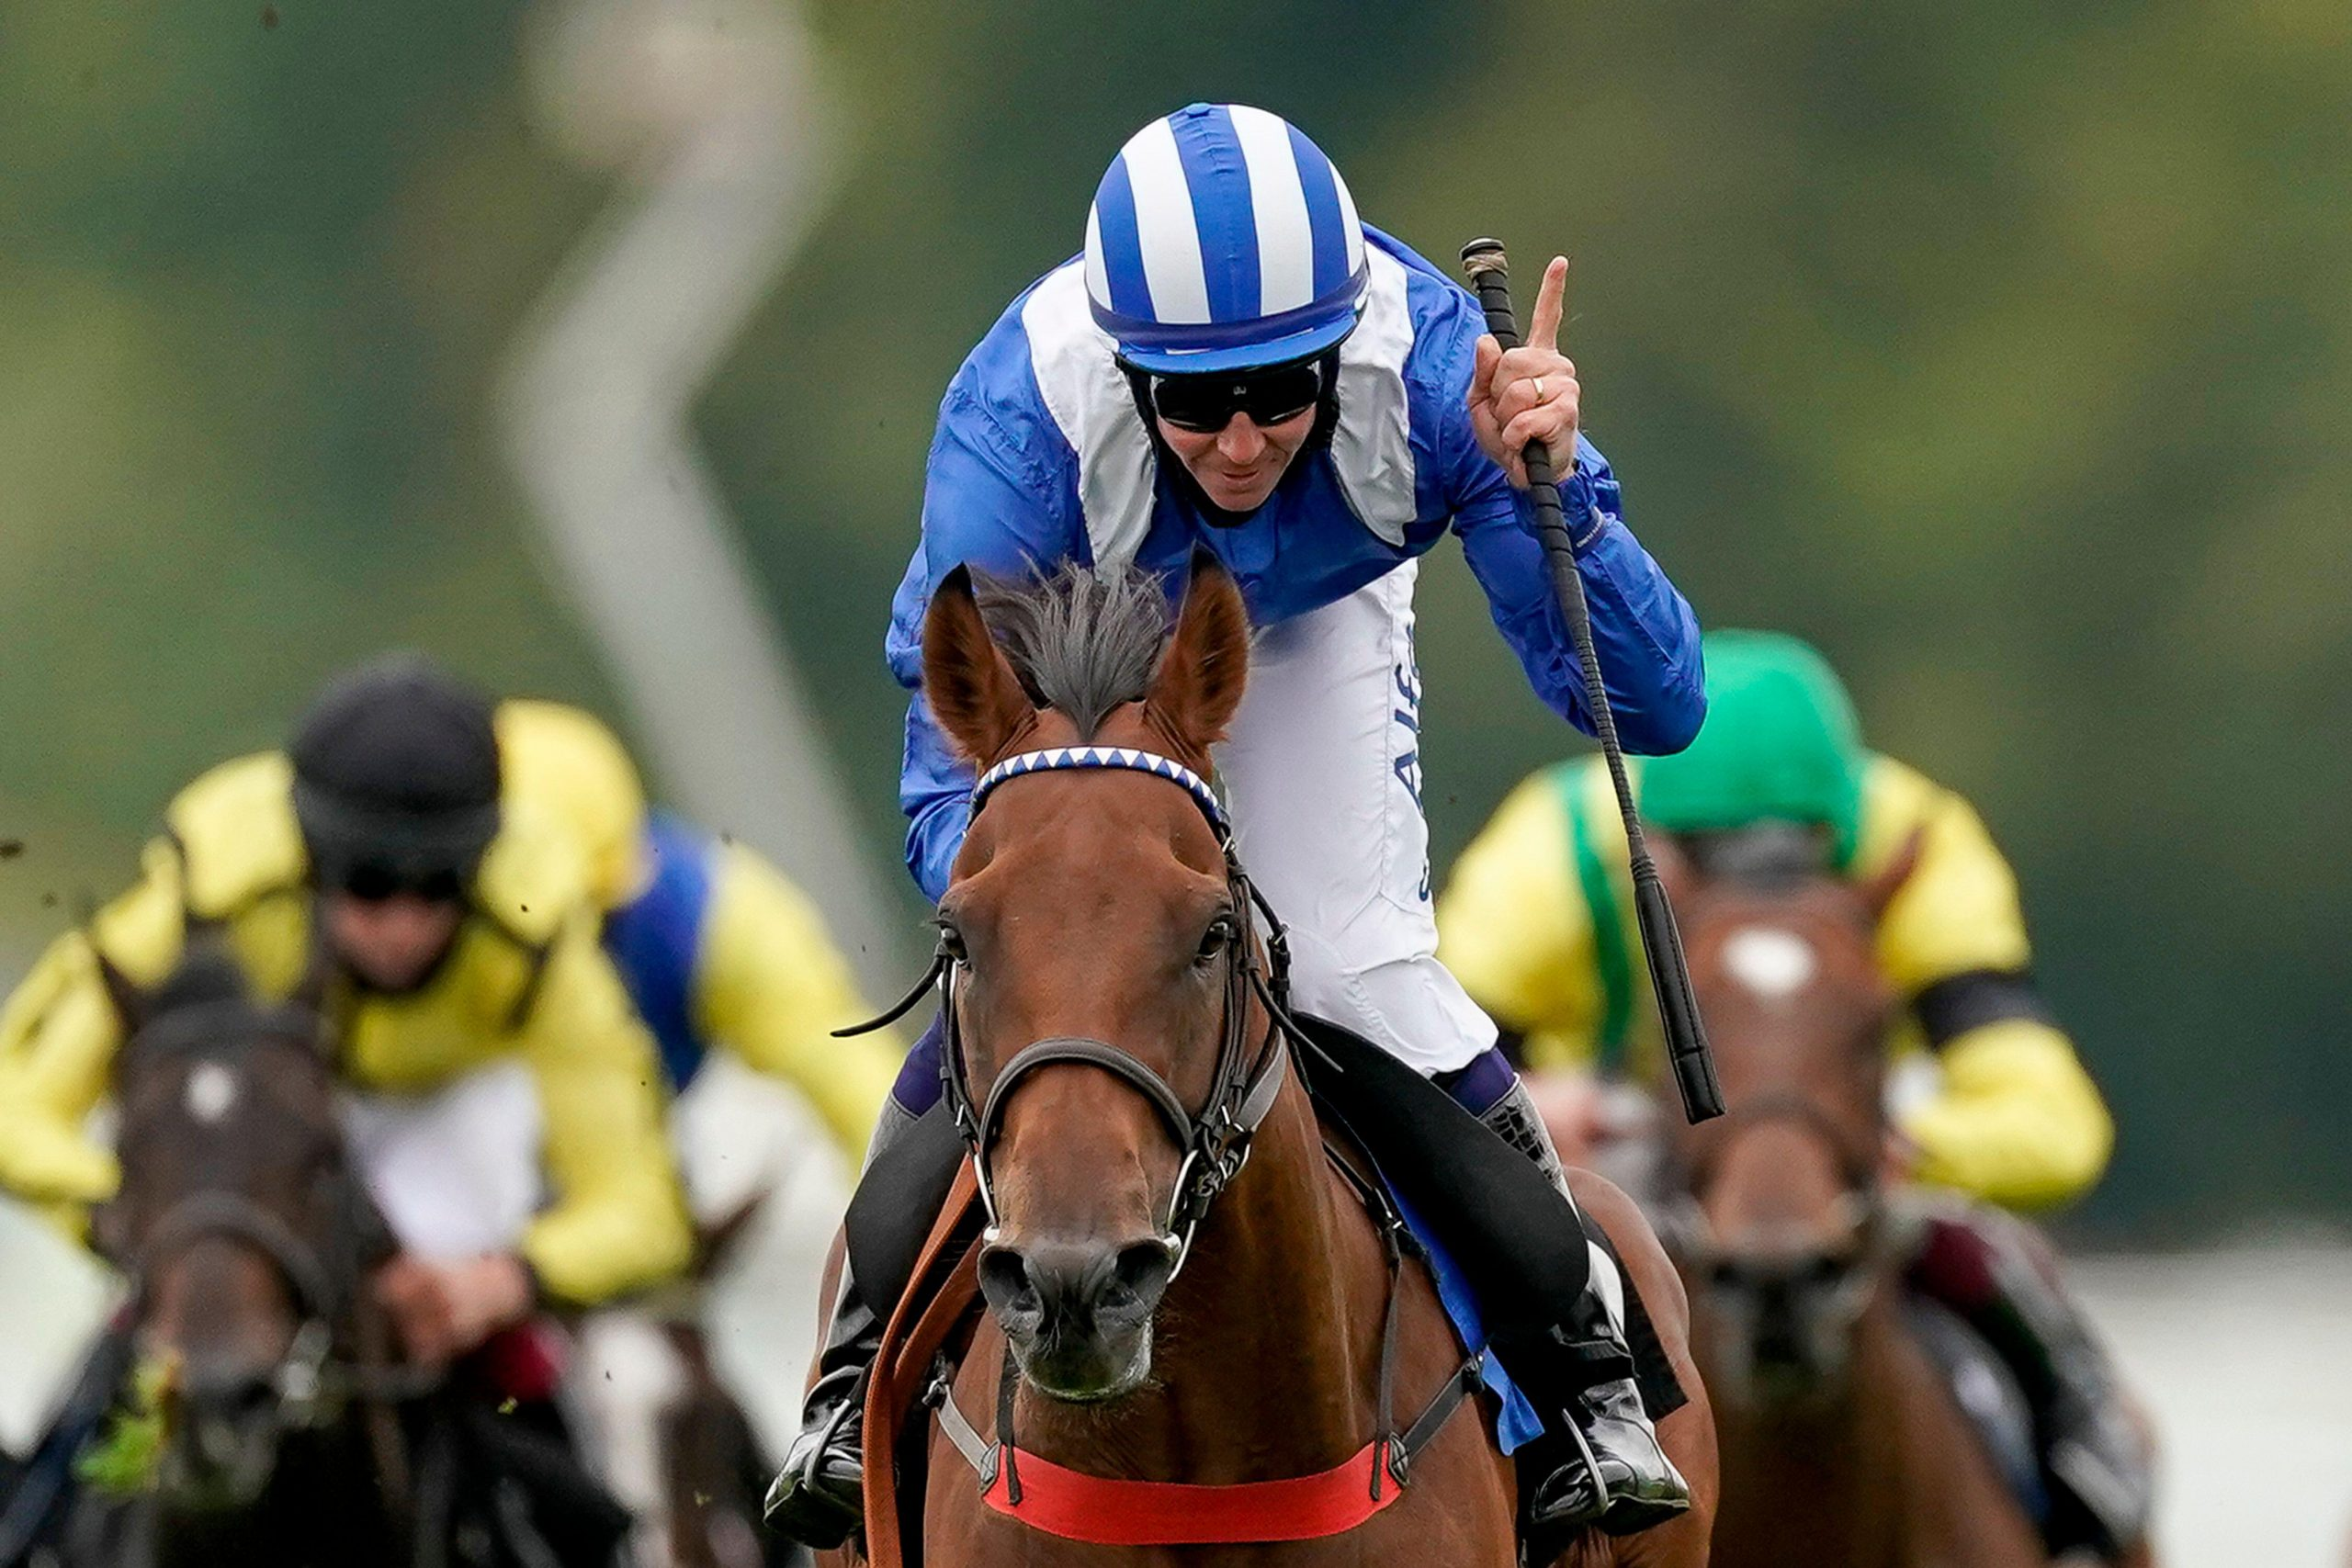 2CE0D60 Jim Crowley on board Modmin on their way to winning the The Ladbrokes Supporting 'Children With Cancer UK' Novice Stakes at Goodwood Racecourse, Chichester. Jim Crowley celebrates his two thousandth UK victory in National Hunt and Flat racing